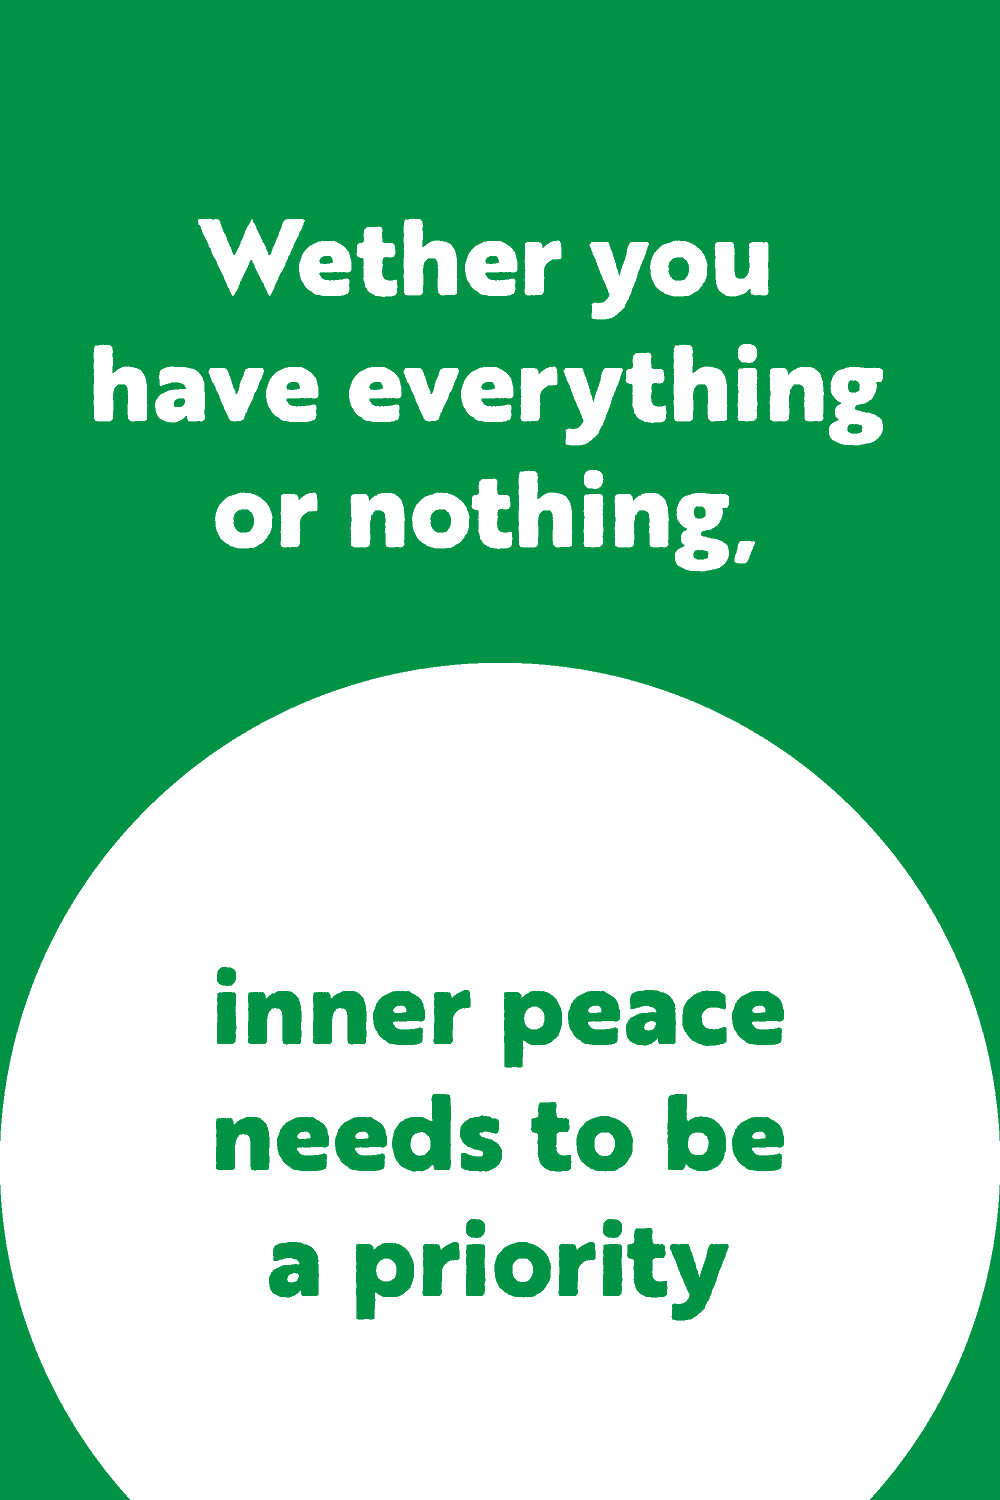 graphic with green backgrond and white text on inner peace and adversity